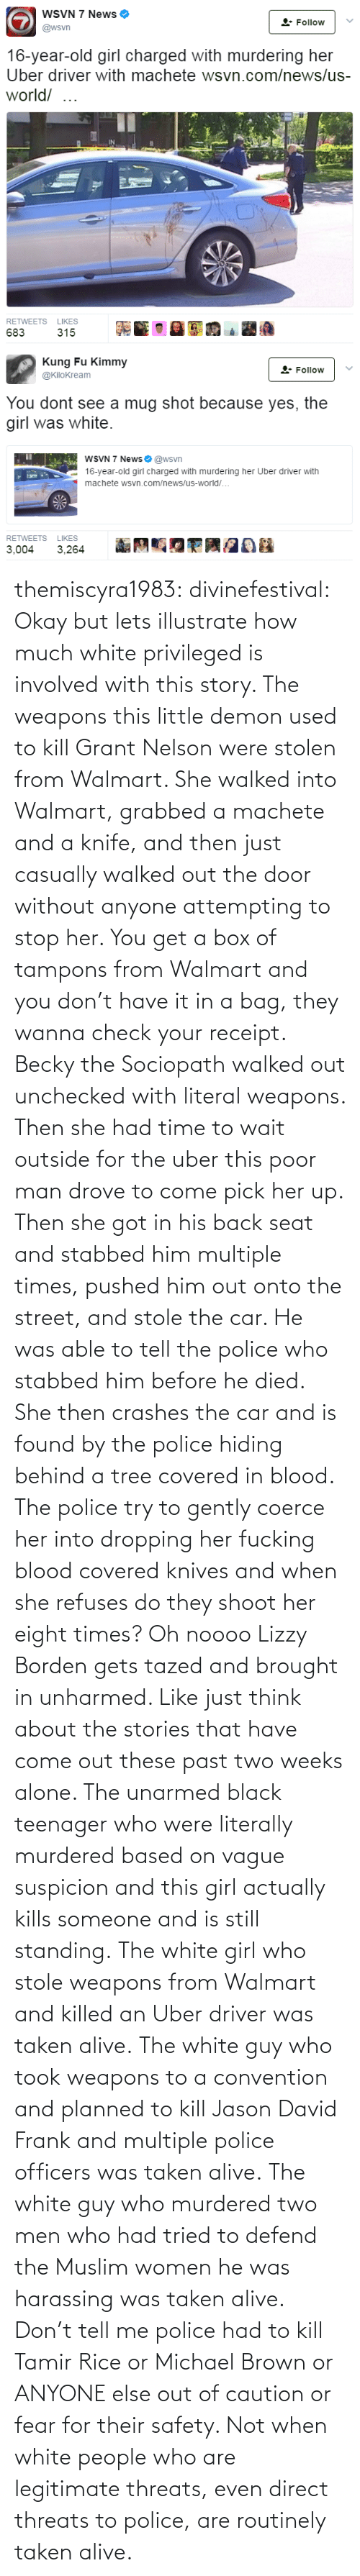 driver: themiscyra1983:  divinefestival:  Okay but lets illustrate how much white privileged is involved with this story. The weapons this little demon used to kill Grant Nelson were stolen from Walmart. She walked into Walmart, grabbed a machete and a knife, and then just casually walked out the door without anyone attempting to stop her. You get a box of tampons from Walmart and you don't have it in a bag, they wanna check your receipt. Becky the Sociopath walked out unchecked with literal weapons.  Then she had time to wait outside for the uber this poor man drove to come pick her up. Then she got in his back seat and stabbed him multiple times, pushed him out onto the street, and stole the car. He was able to tell the police who stabbed him before he died. She then crashes the car and is found by the police hiding behind a tree covered in blood. The police try to gently coerce her into dropping her fucking blood covered knives and when she refuses do they shoot her eight times? Oh noooo Lizzy Borden gets tazed and brought in unharmed.  Like just think about the stories that have come out these past two weeks alone. The unarmed black teenager who were literally murdered based on vague suspicion and this girl actually kills someone and is still standing.   The white girl who stole weapons from Walmart and killed an Uber driver was taken alive. The white guy who took weapons to a convention and planned to kill Jason David Frank and multiple police officers was taken alive. The white guy who murdered two men who had tried to defend the Muslim women he was harassing was taken alive. Don't tell me police had to kill Tamir Rice or Michael Brown or ANYONE else out of caution or fear for their safety. Not when white people who are legitimate threats, even direct threats to police, are routinely taken alive.